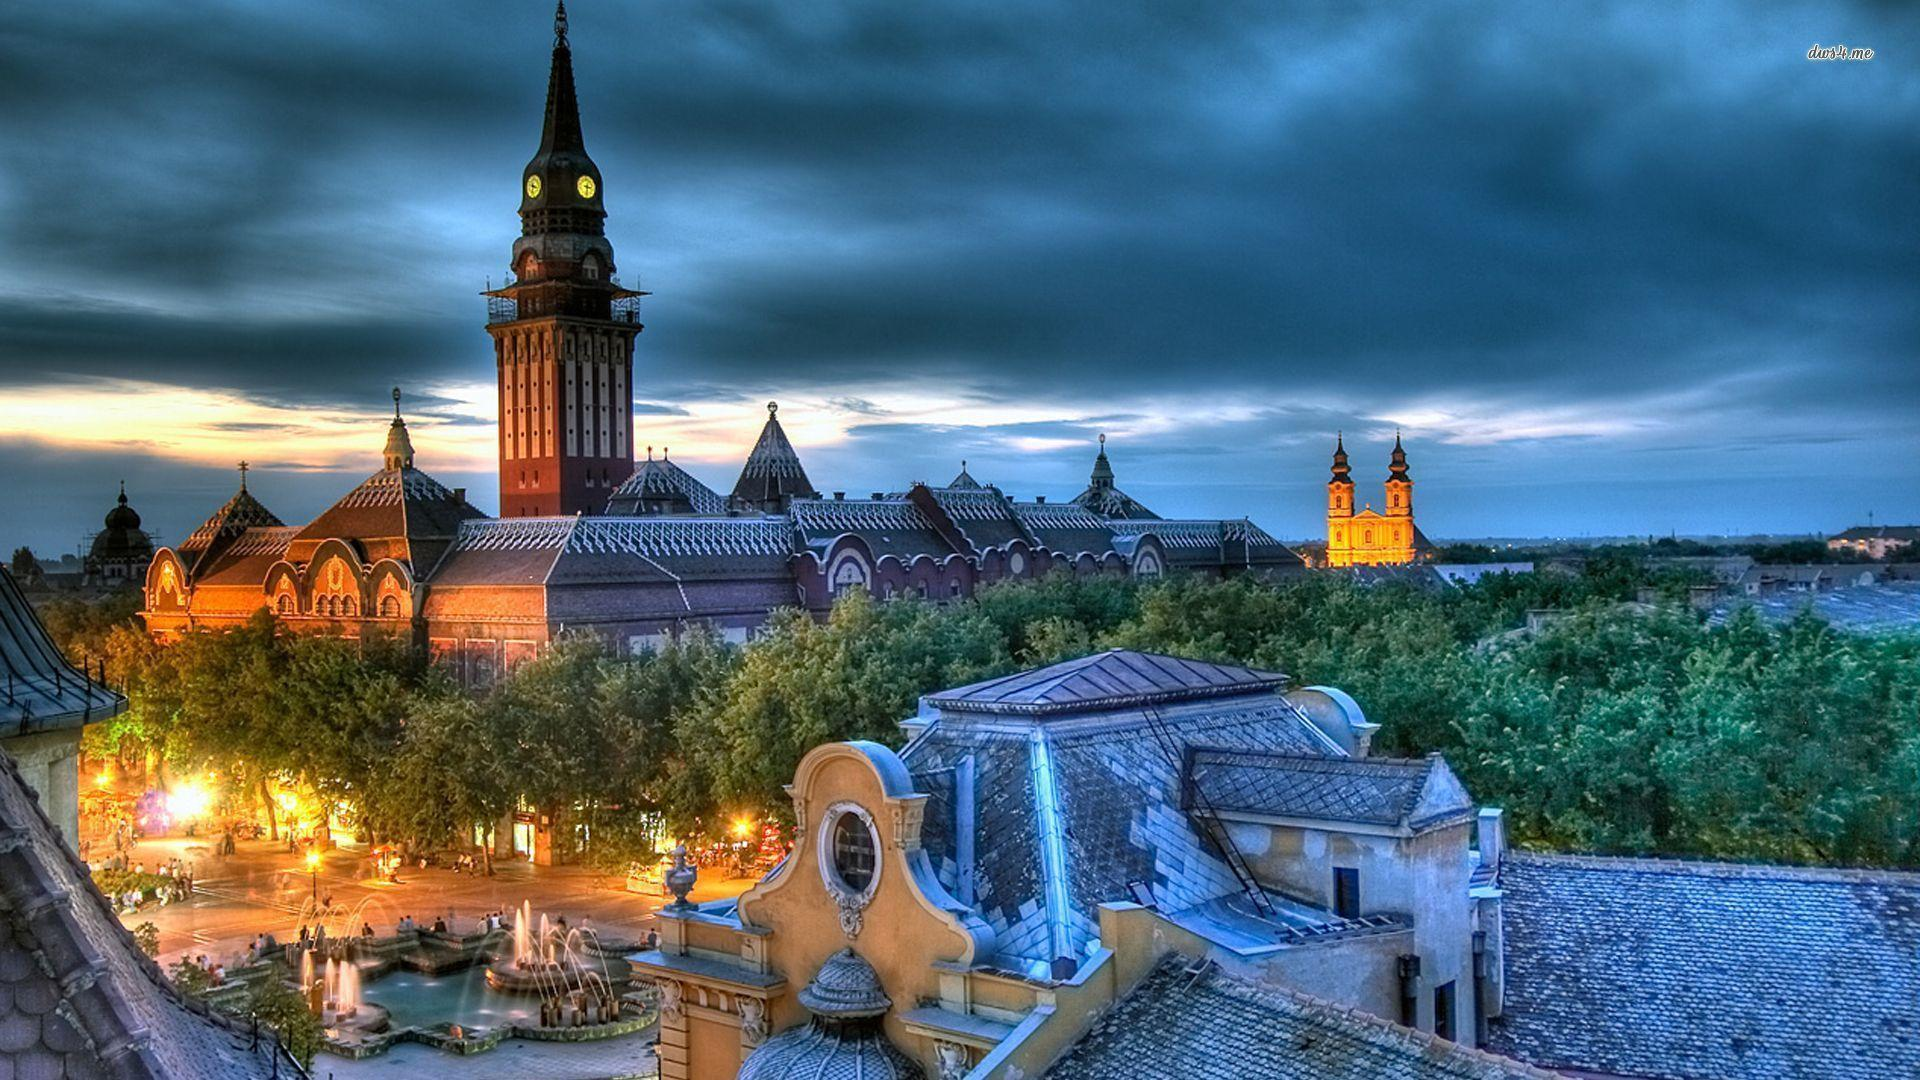 Subotica, Serbia wallpapers